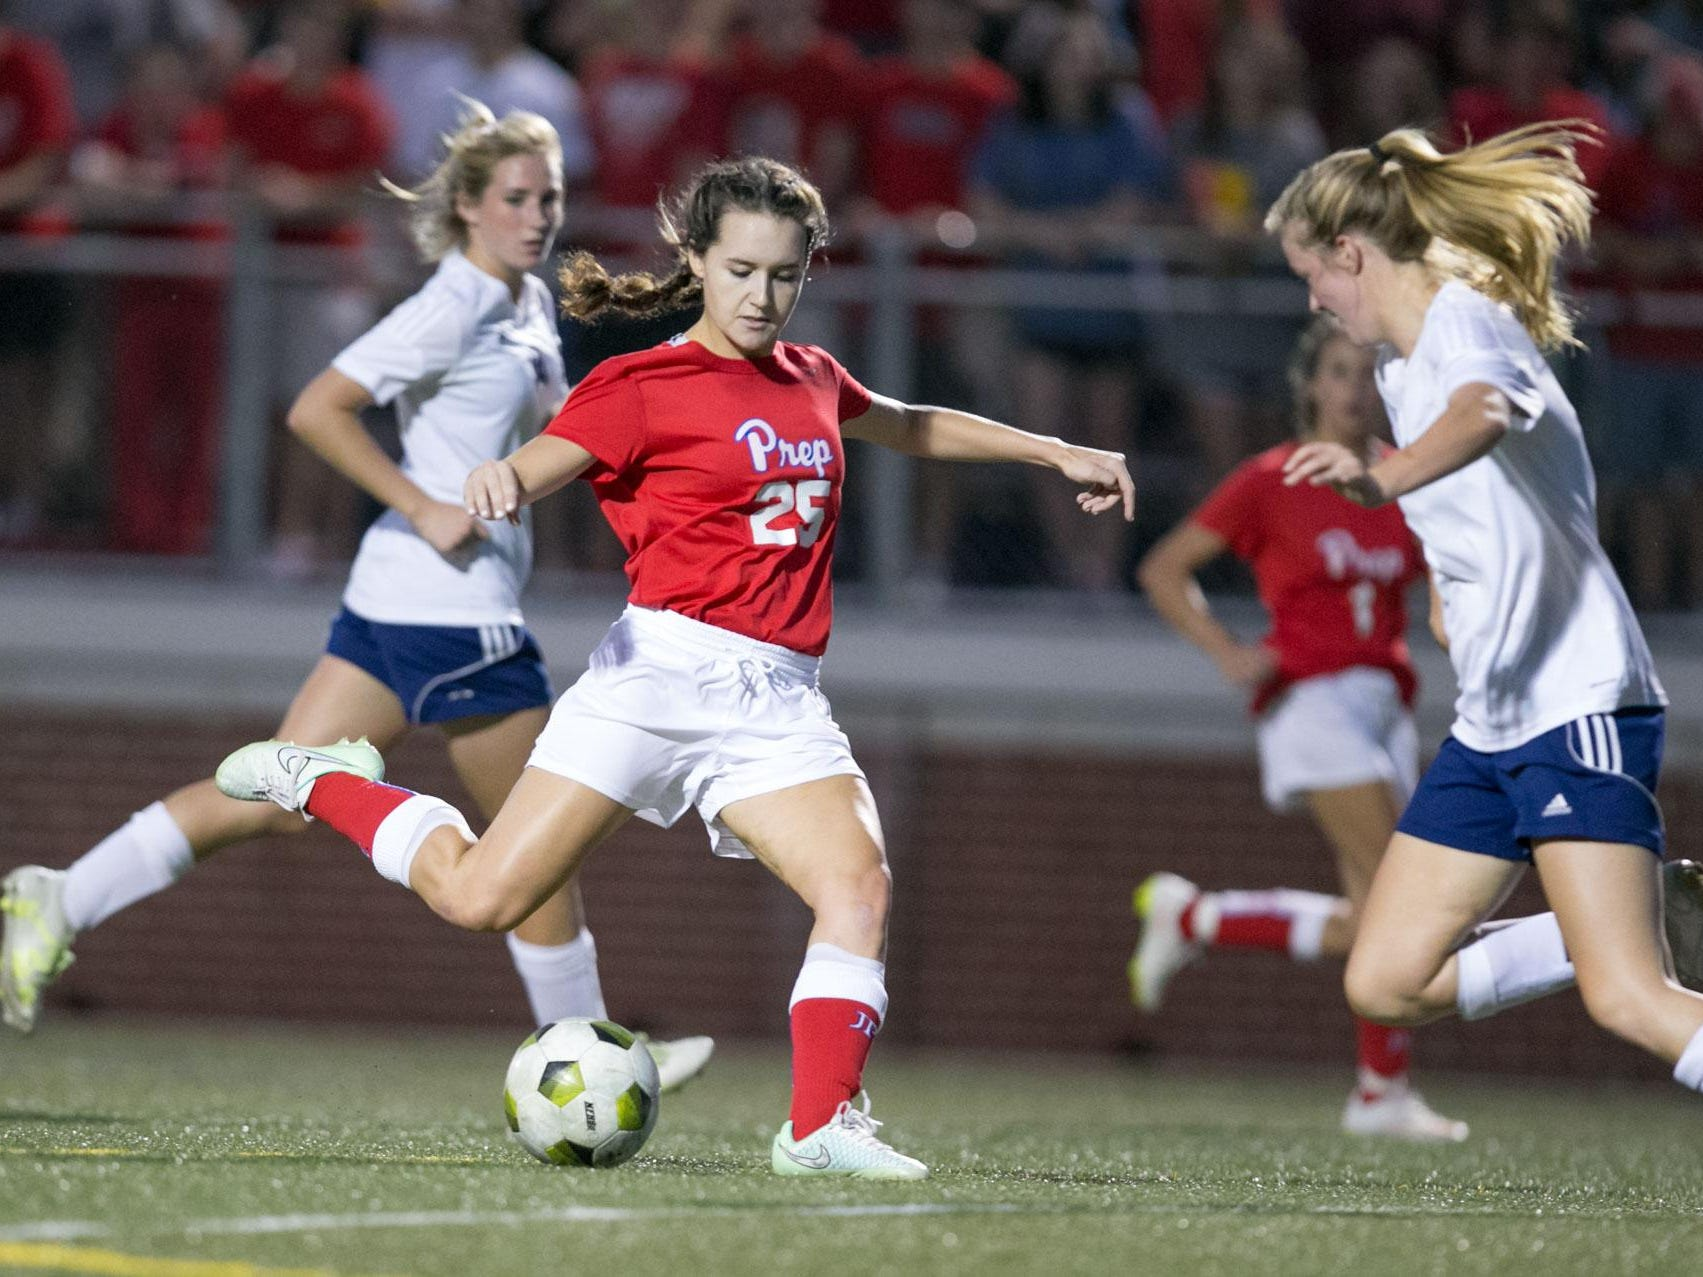 Clayton Noblin and the Jackson Prep Lady Patriots won the MAIS AAAA championship over Jackson Academy 2-1 on Monday, and they finished No. 1 in the state in girls soccer.